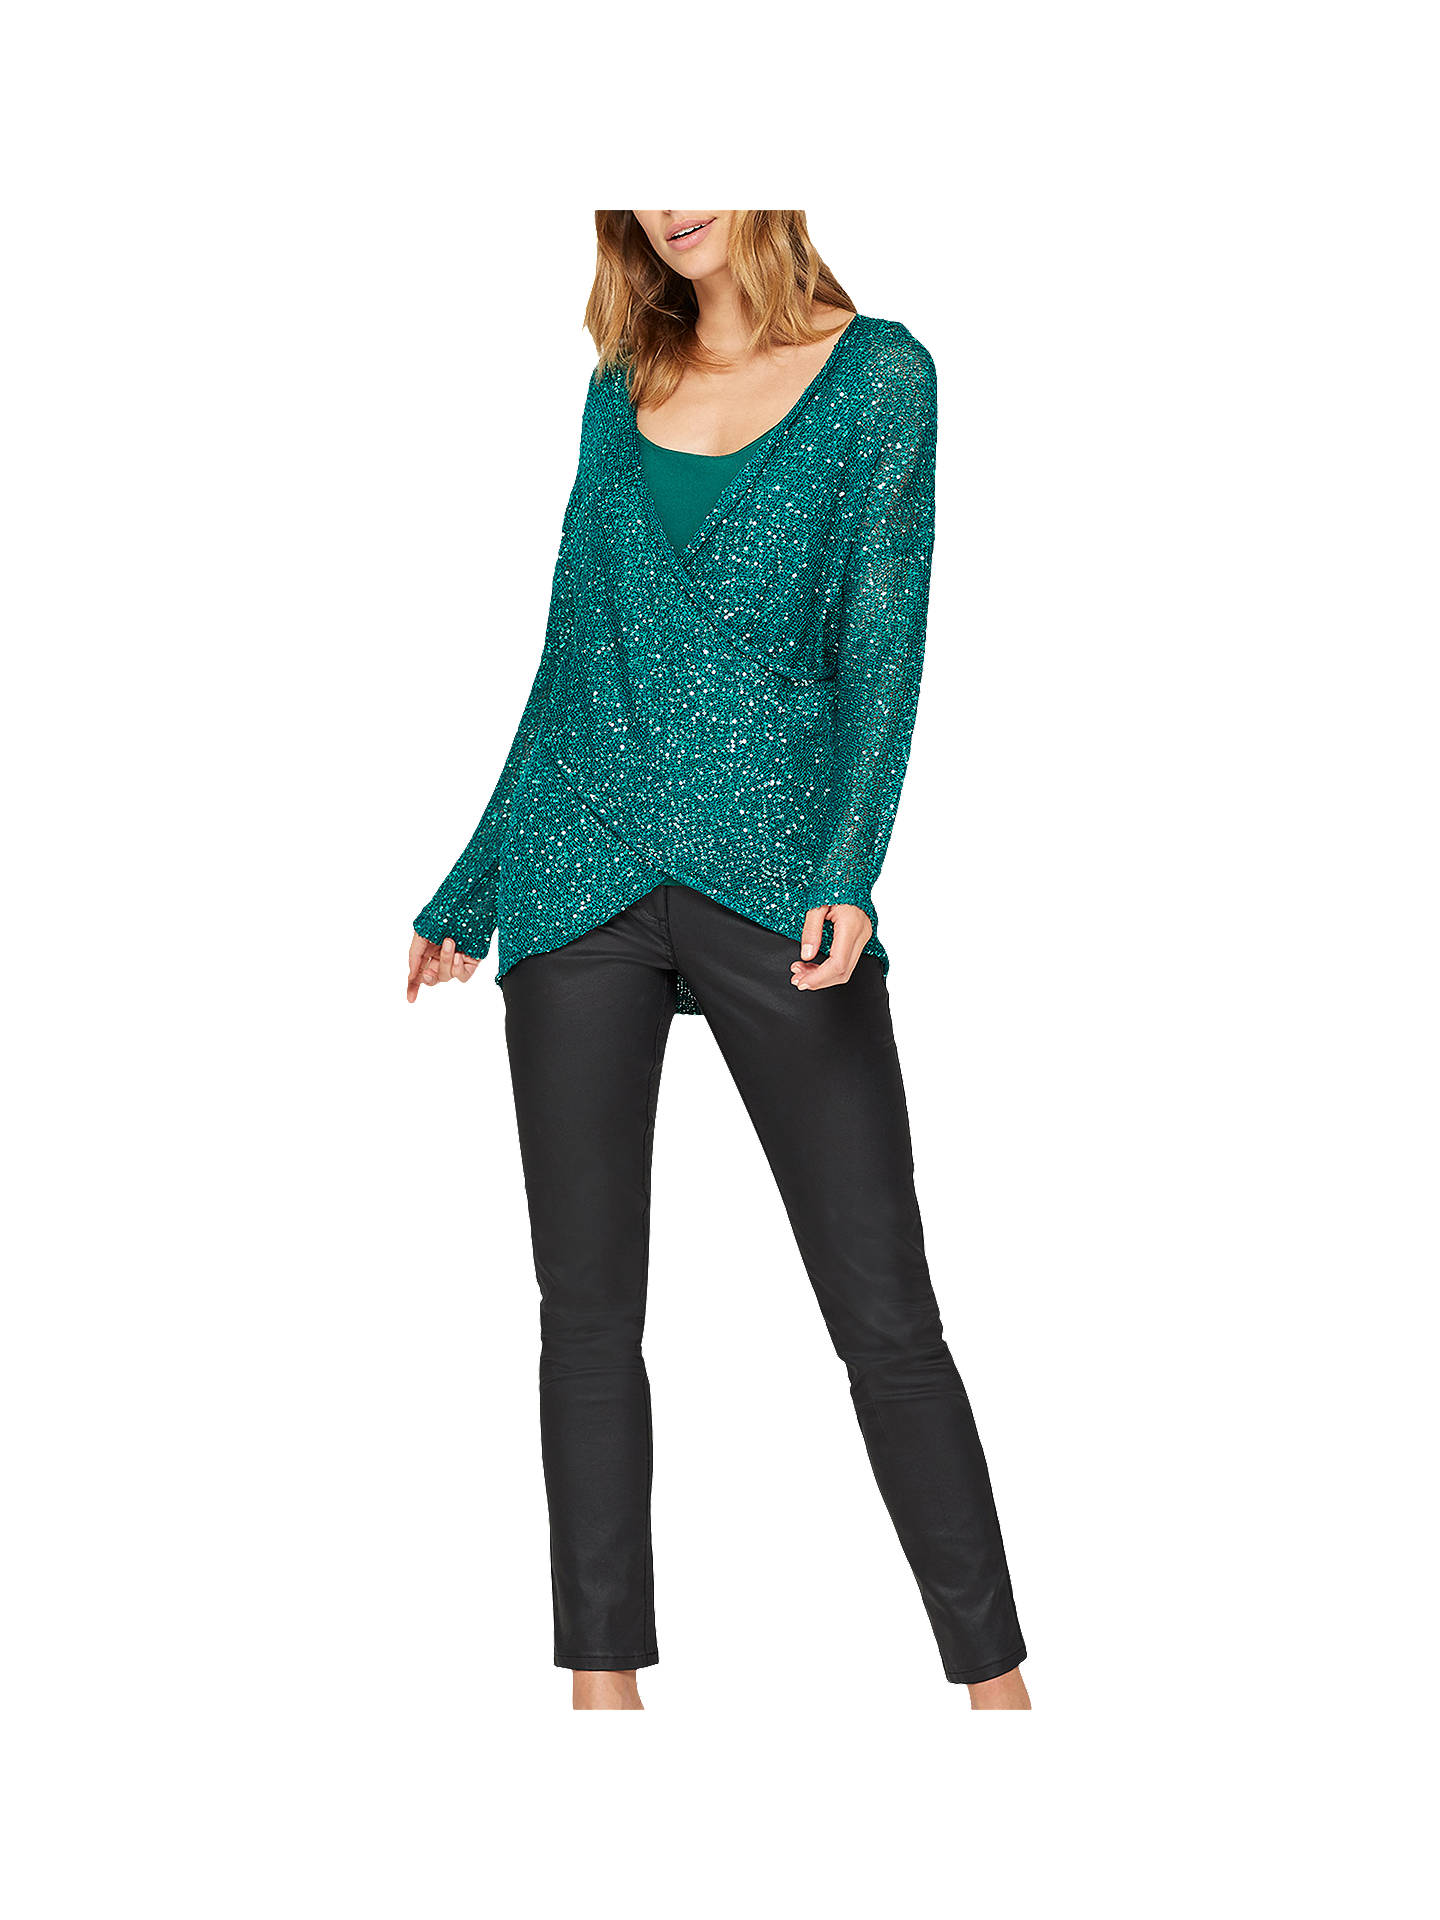 76dc56f0c6a ... Buy Damsel in a Dress Averie Seqin Knitted Jumper